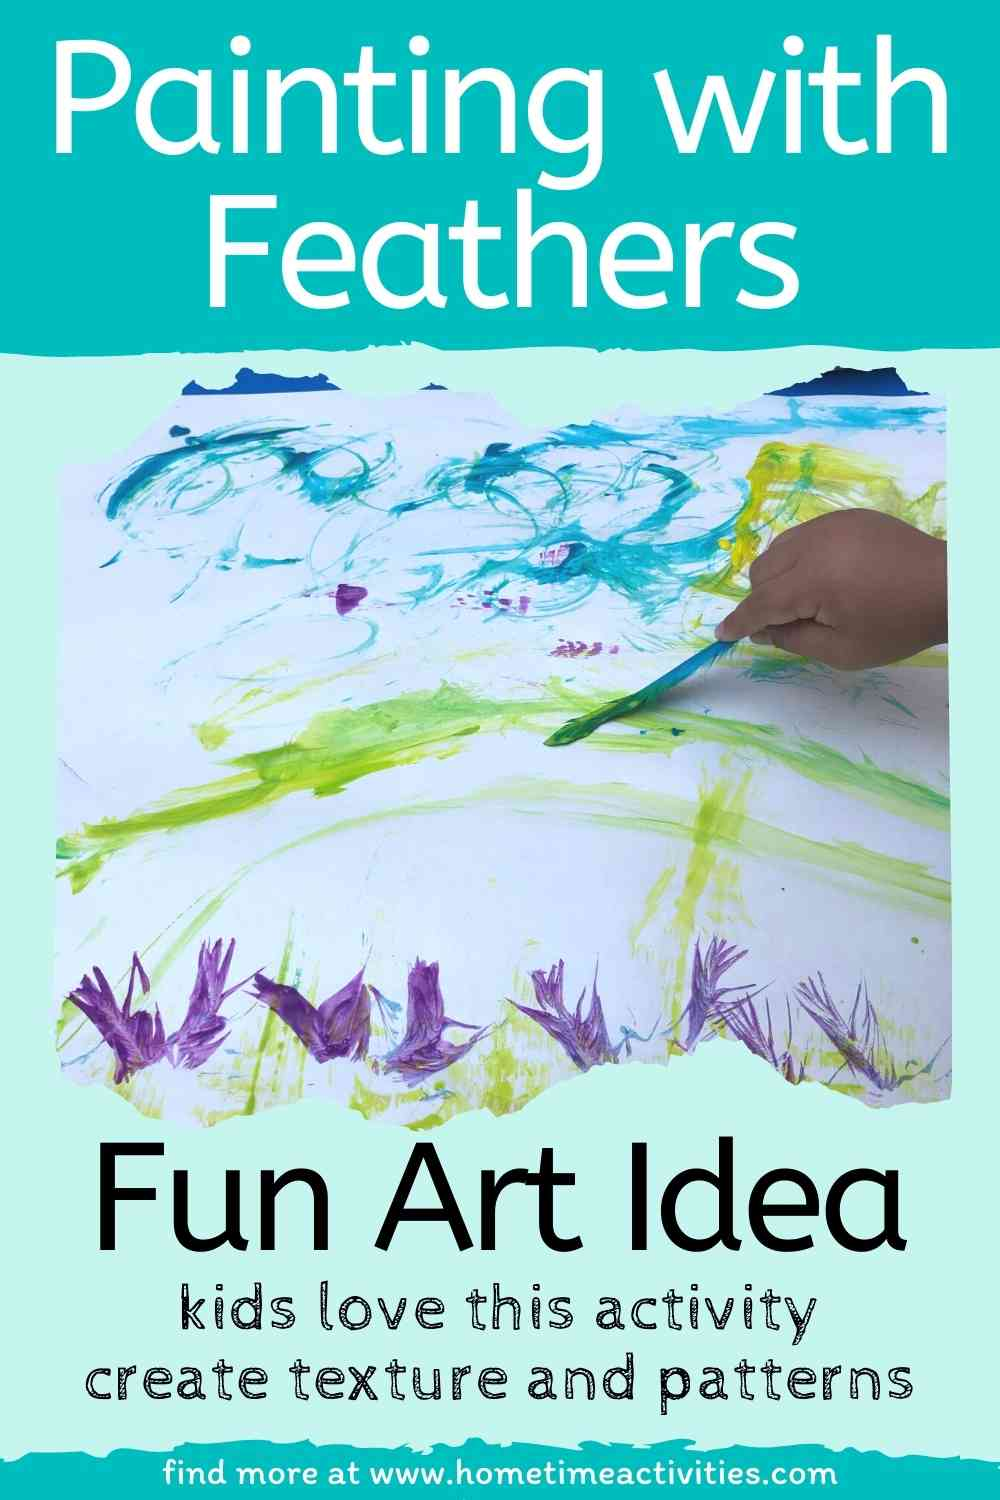 Painting with Feathers - fun art idea - image with kid painting and text